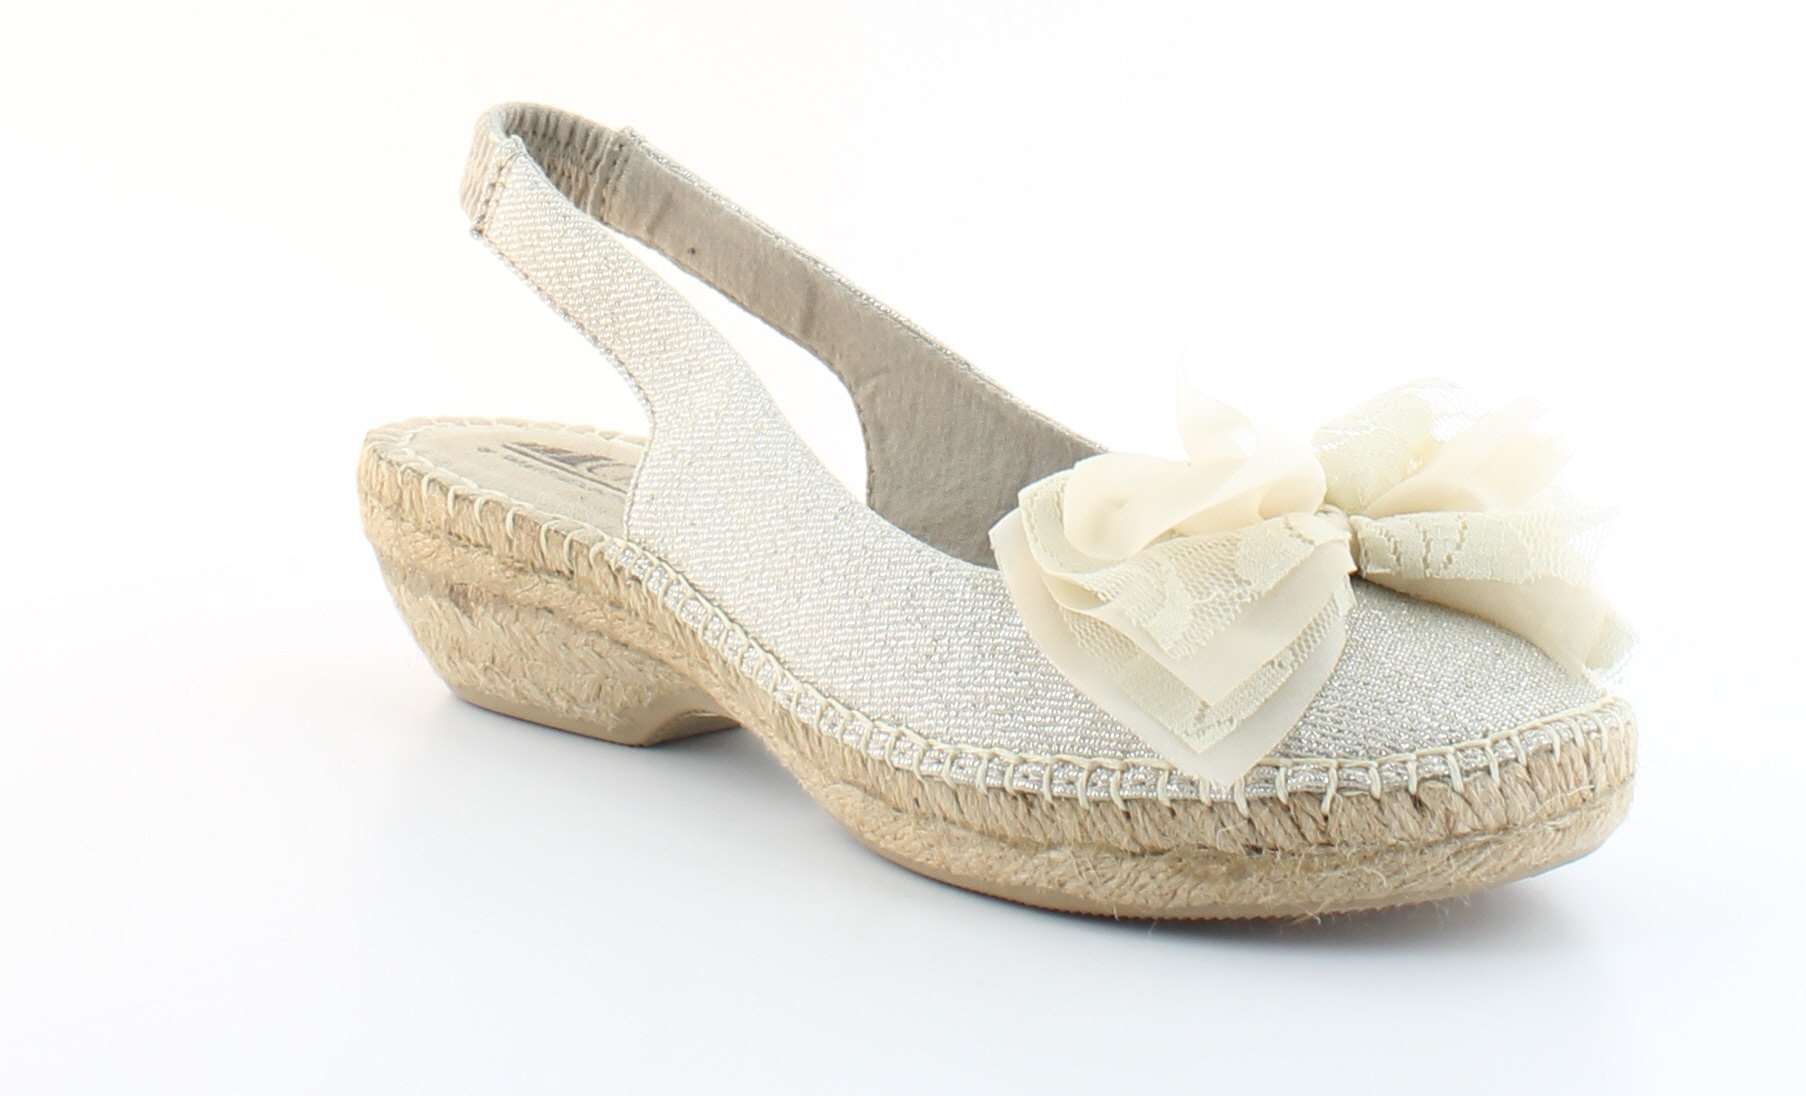 Cliffs-by-White-Mountain-Camelot-Beige-Womens-Shoes-Size-6-5-M-Sandals